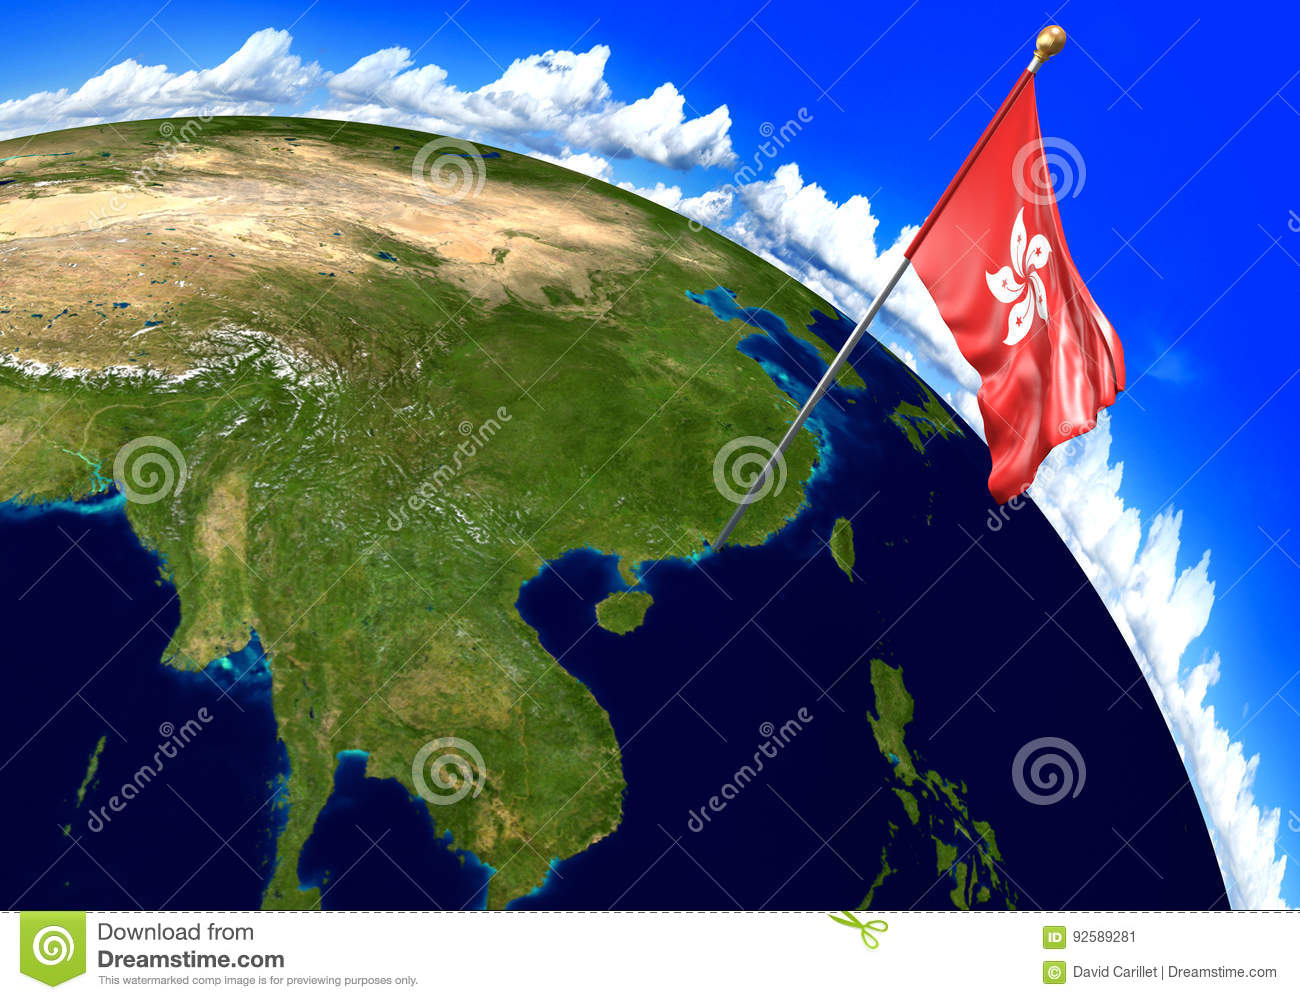 Hong Kong National Flag Marking The Country Location On World Map